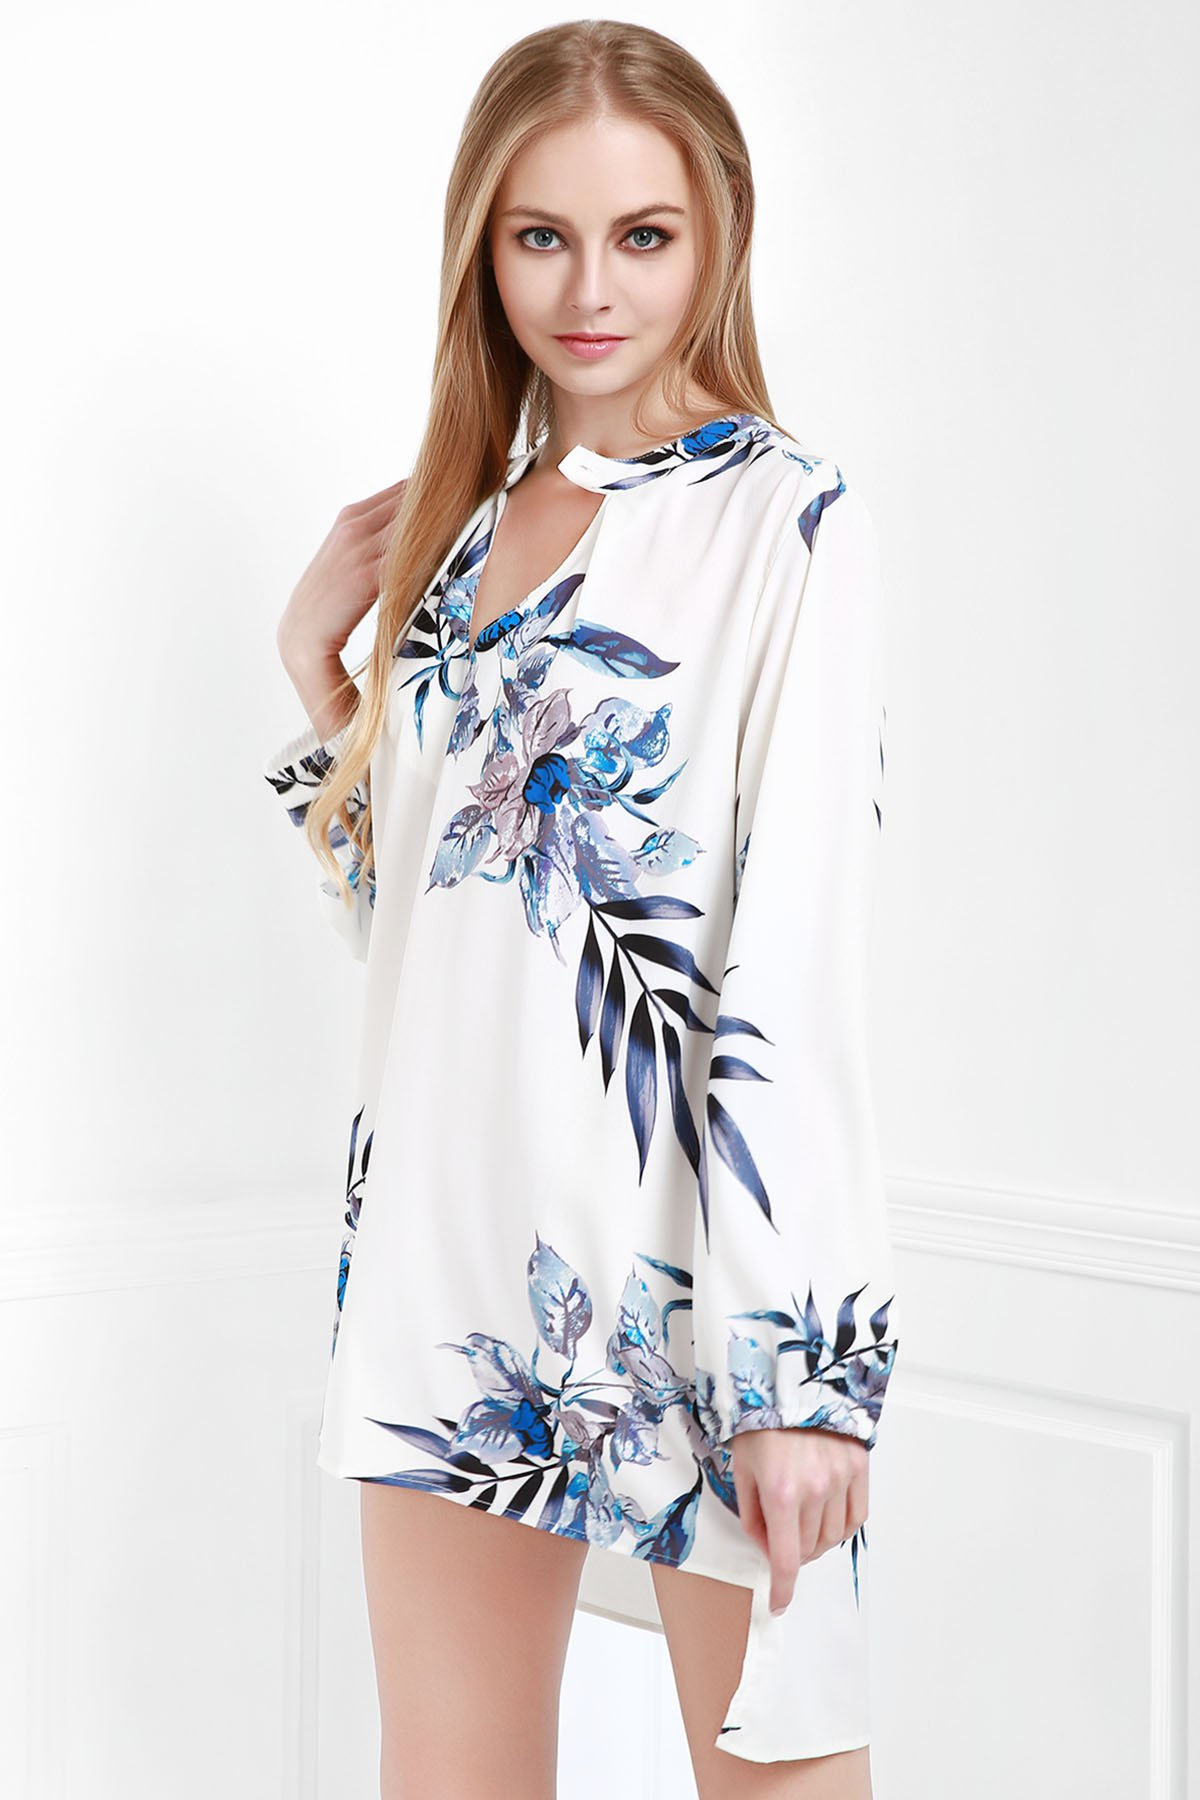 V-Neck Flower Loose-Fitting Blouse - WHITE ONE SIZE(FIT SIZE XS TO M)